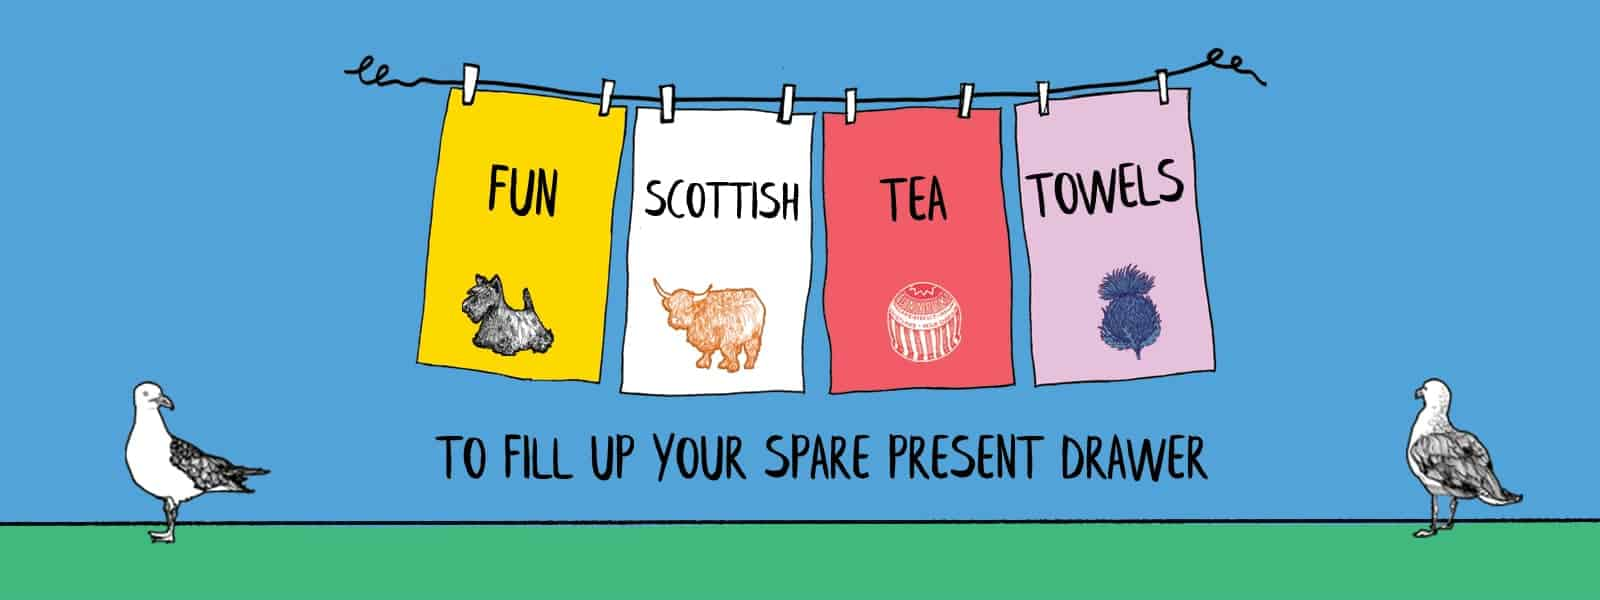 Scottish tea towels from Gillian Kyle